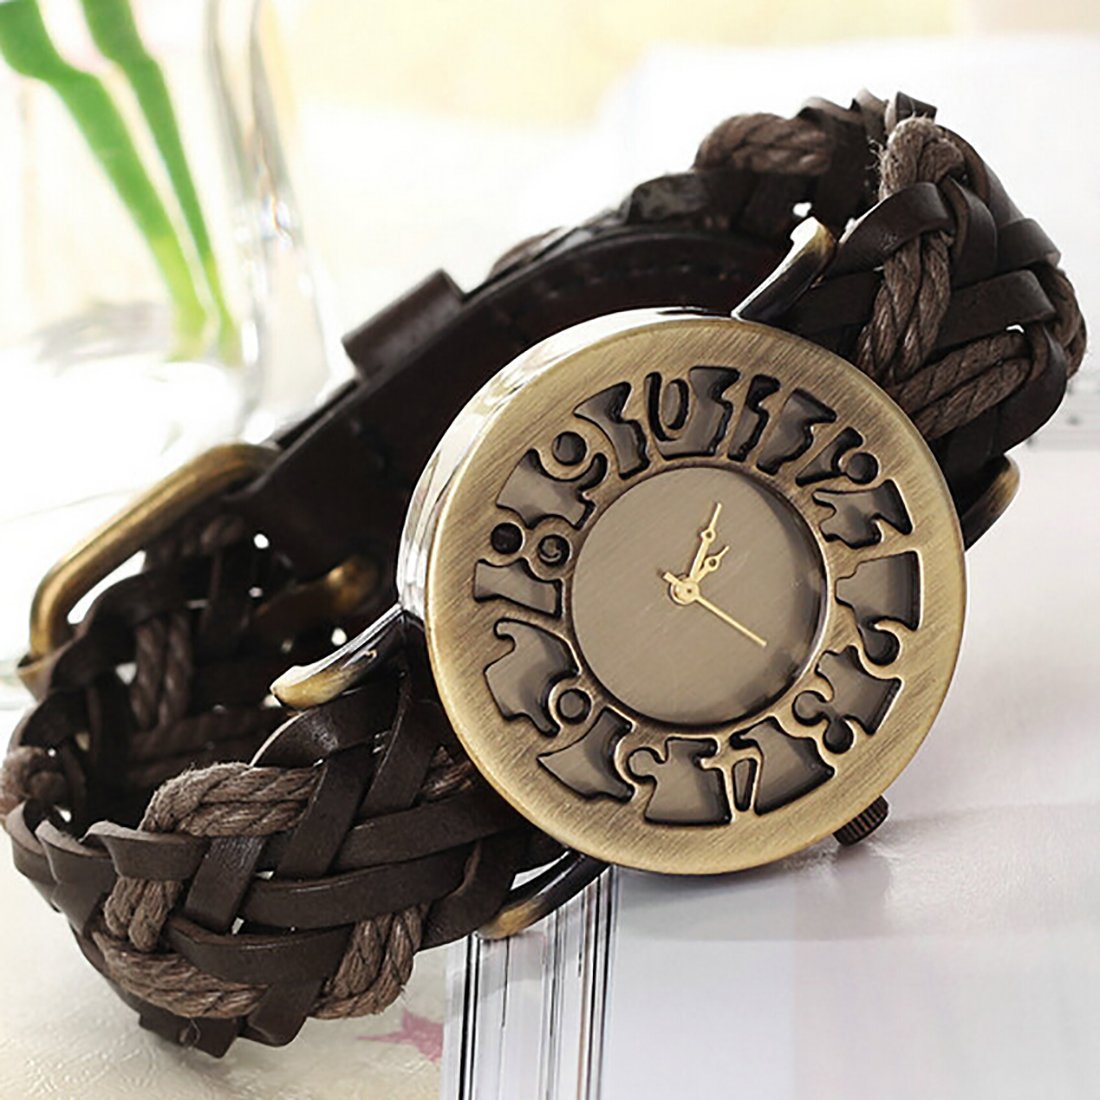 Amazon.com: 2016 Women Braided Leather Hollow Skeleton Dress Watches Quartz Watches Retro Vintage Bracelet Wristwatch Relogio Feminino Brown: Watches